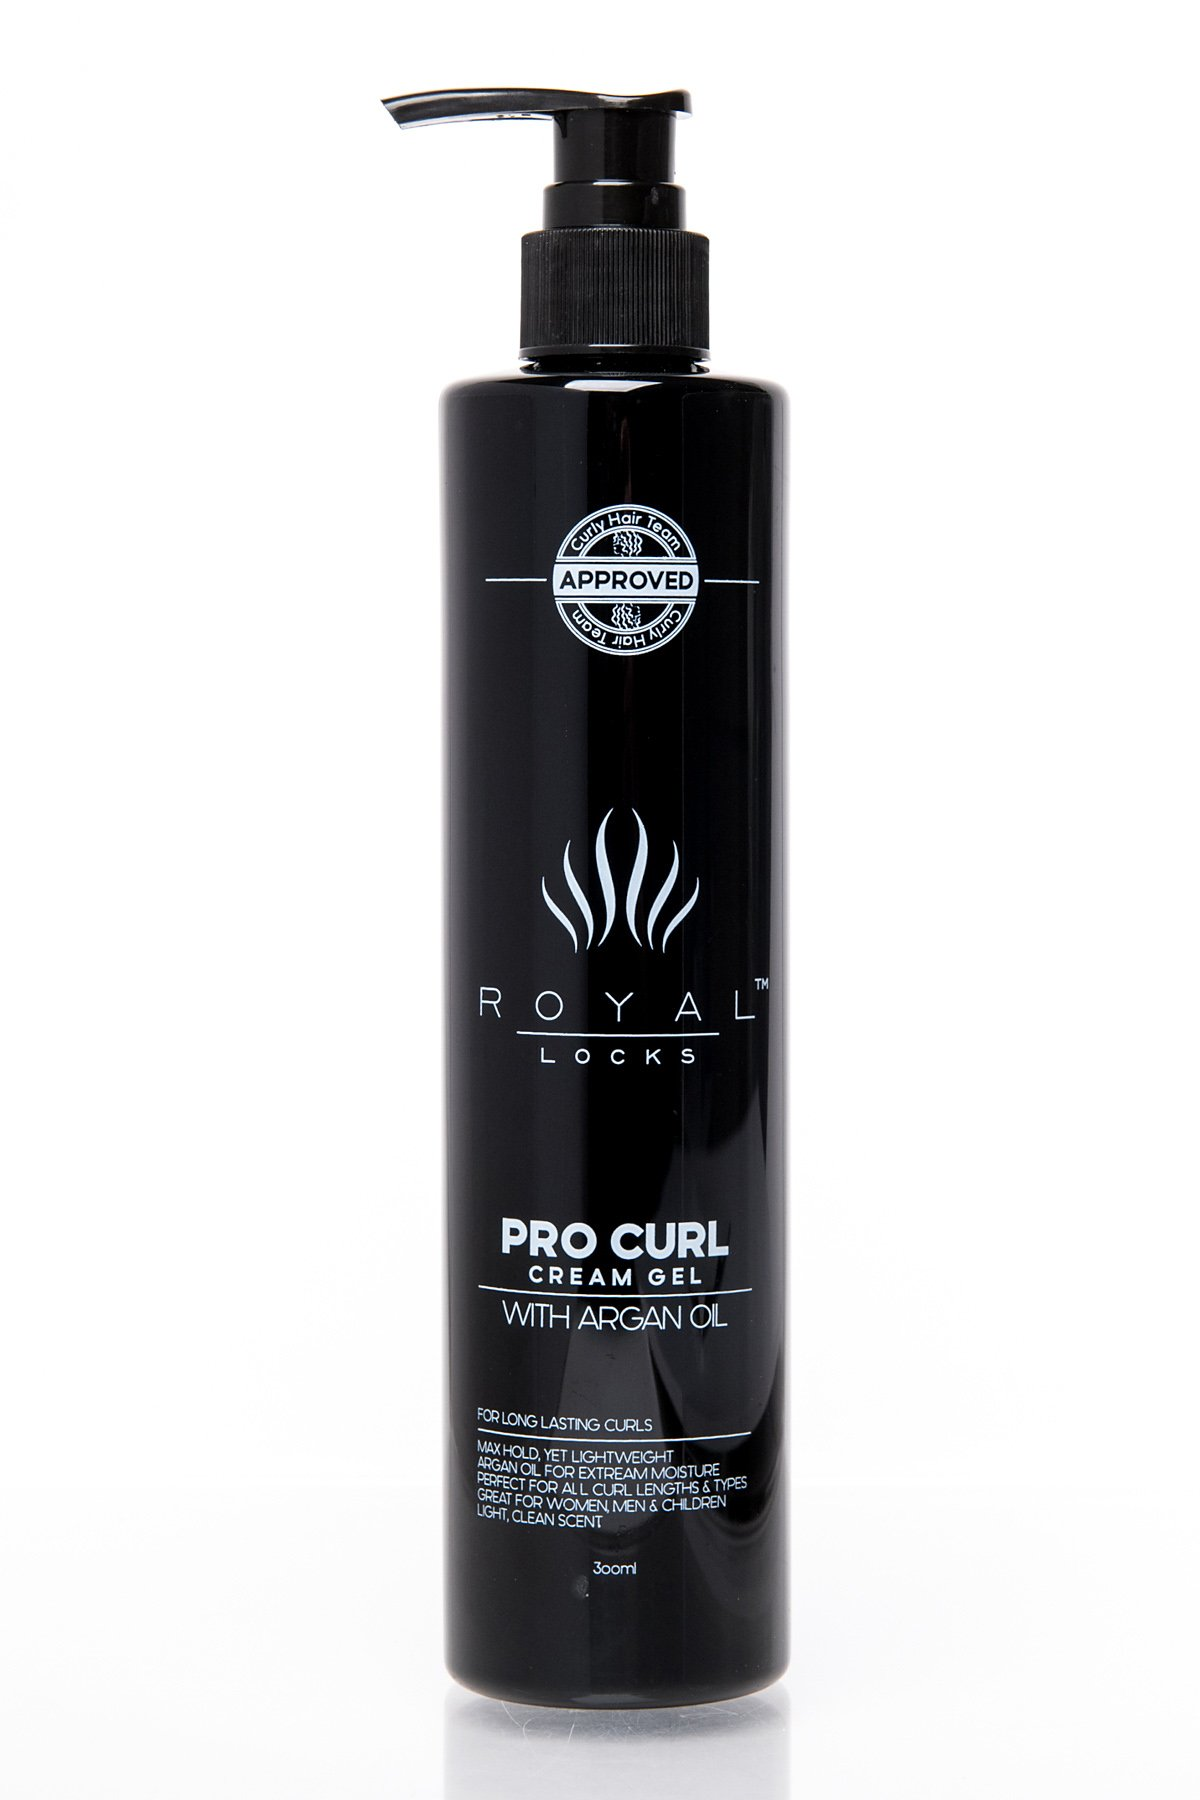 Royal Locks Pro Curl Cream Gel   Lightweight Cream Gel for Defining, Activating, Frizz Reduction, and Hold of Wavy and Curly Hair   with Argan Oil and other Nourishing Botanicals   10 Oz